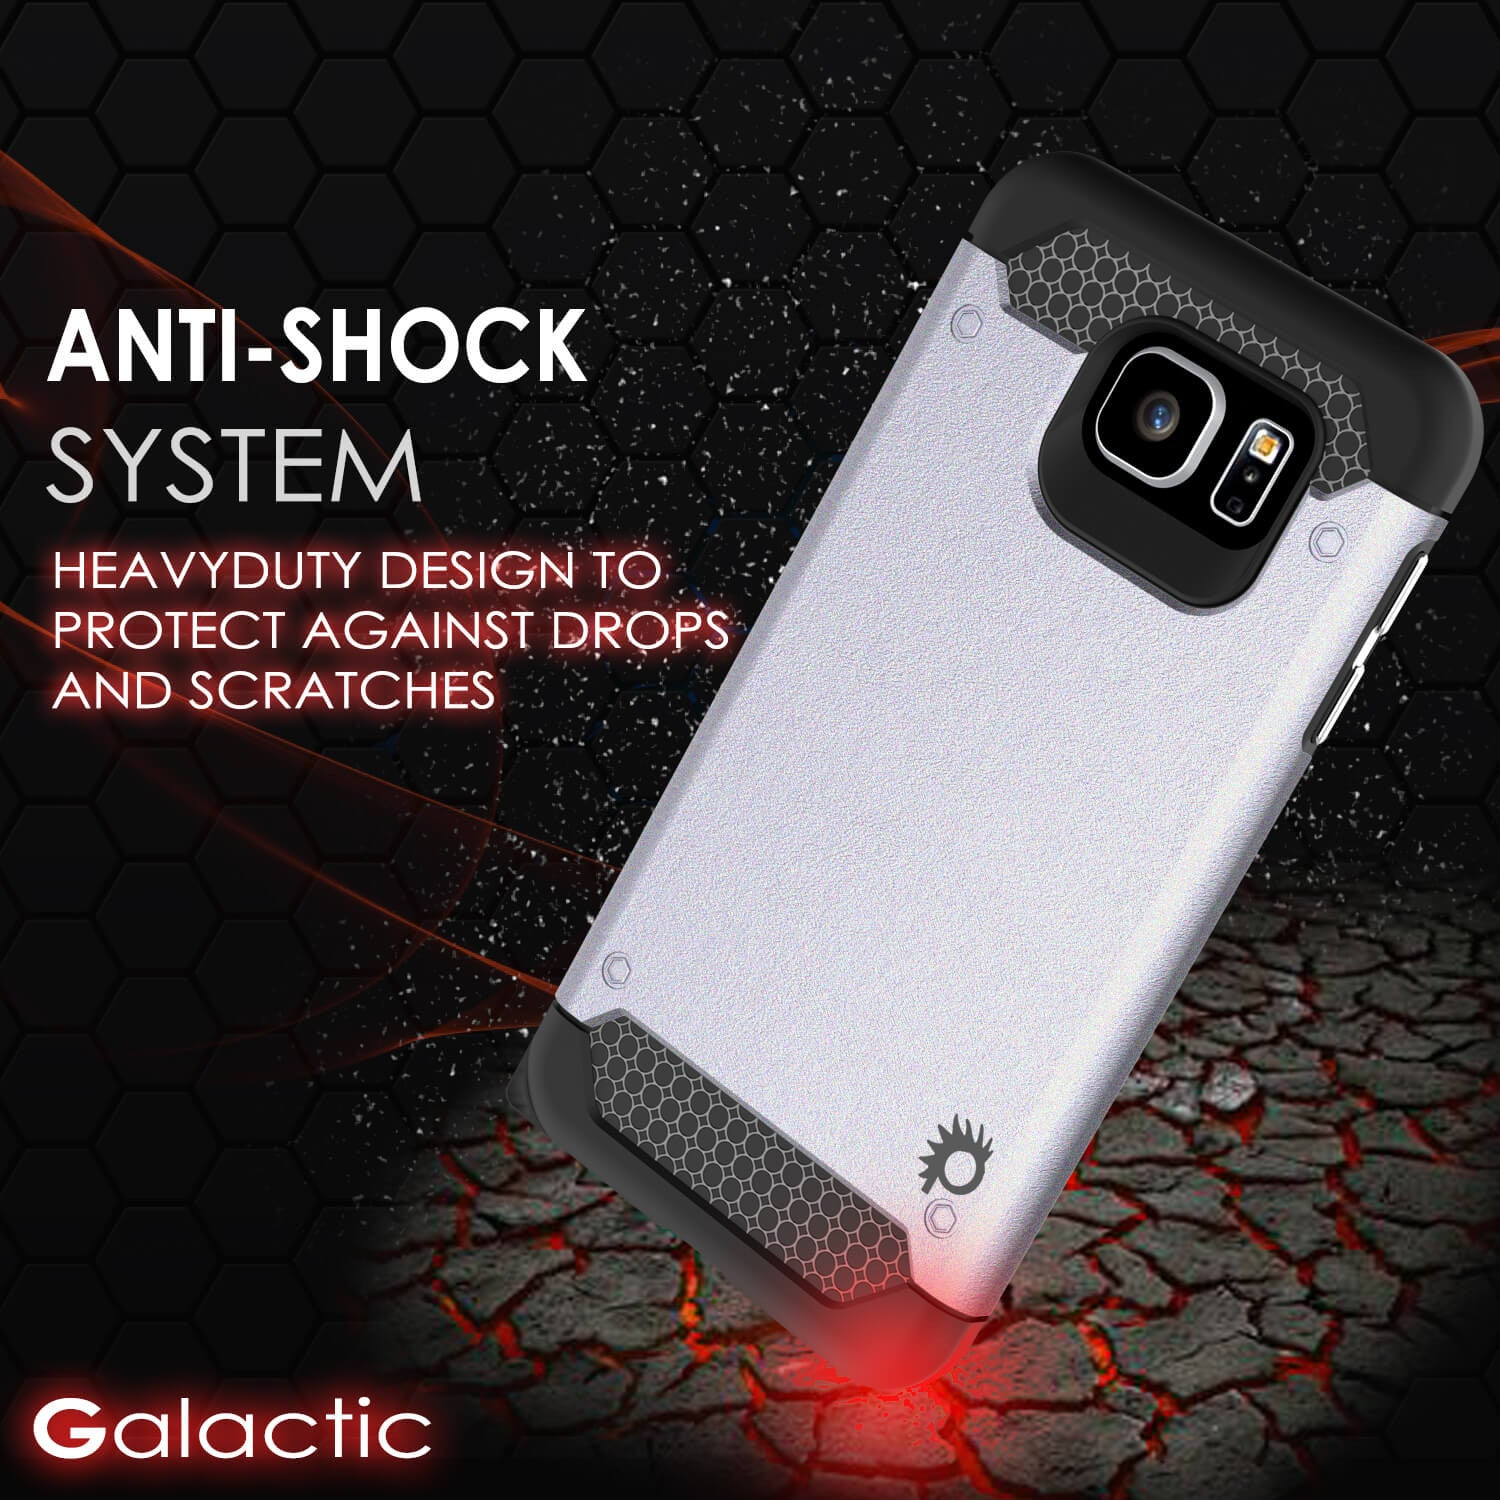 Galaxy S6 Case PunkCase Galactic Silver Slim Protective Armor Soft Cover Case w/ Tempered Glass